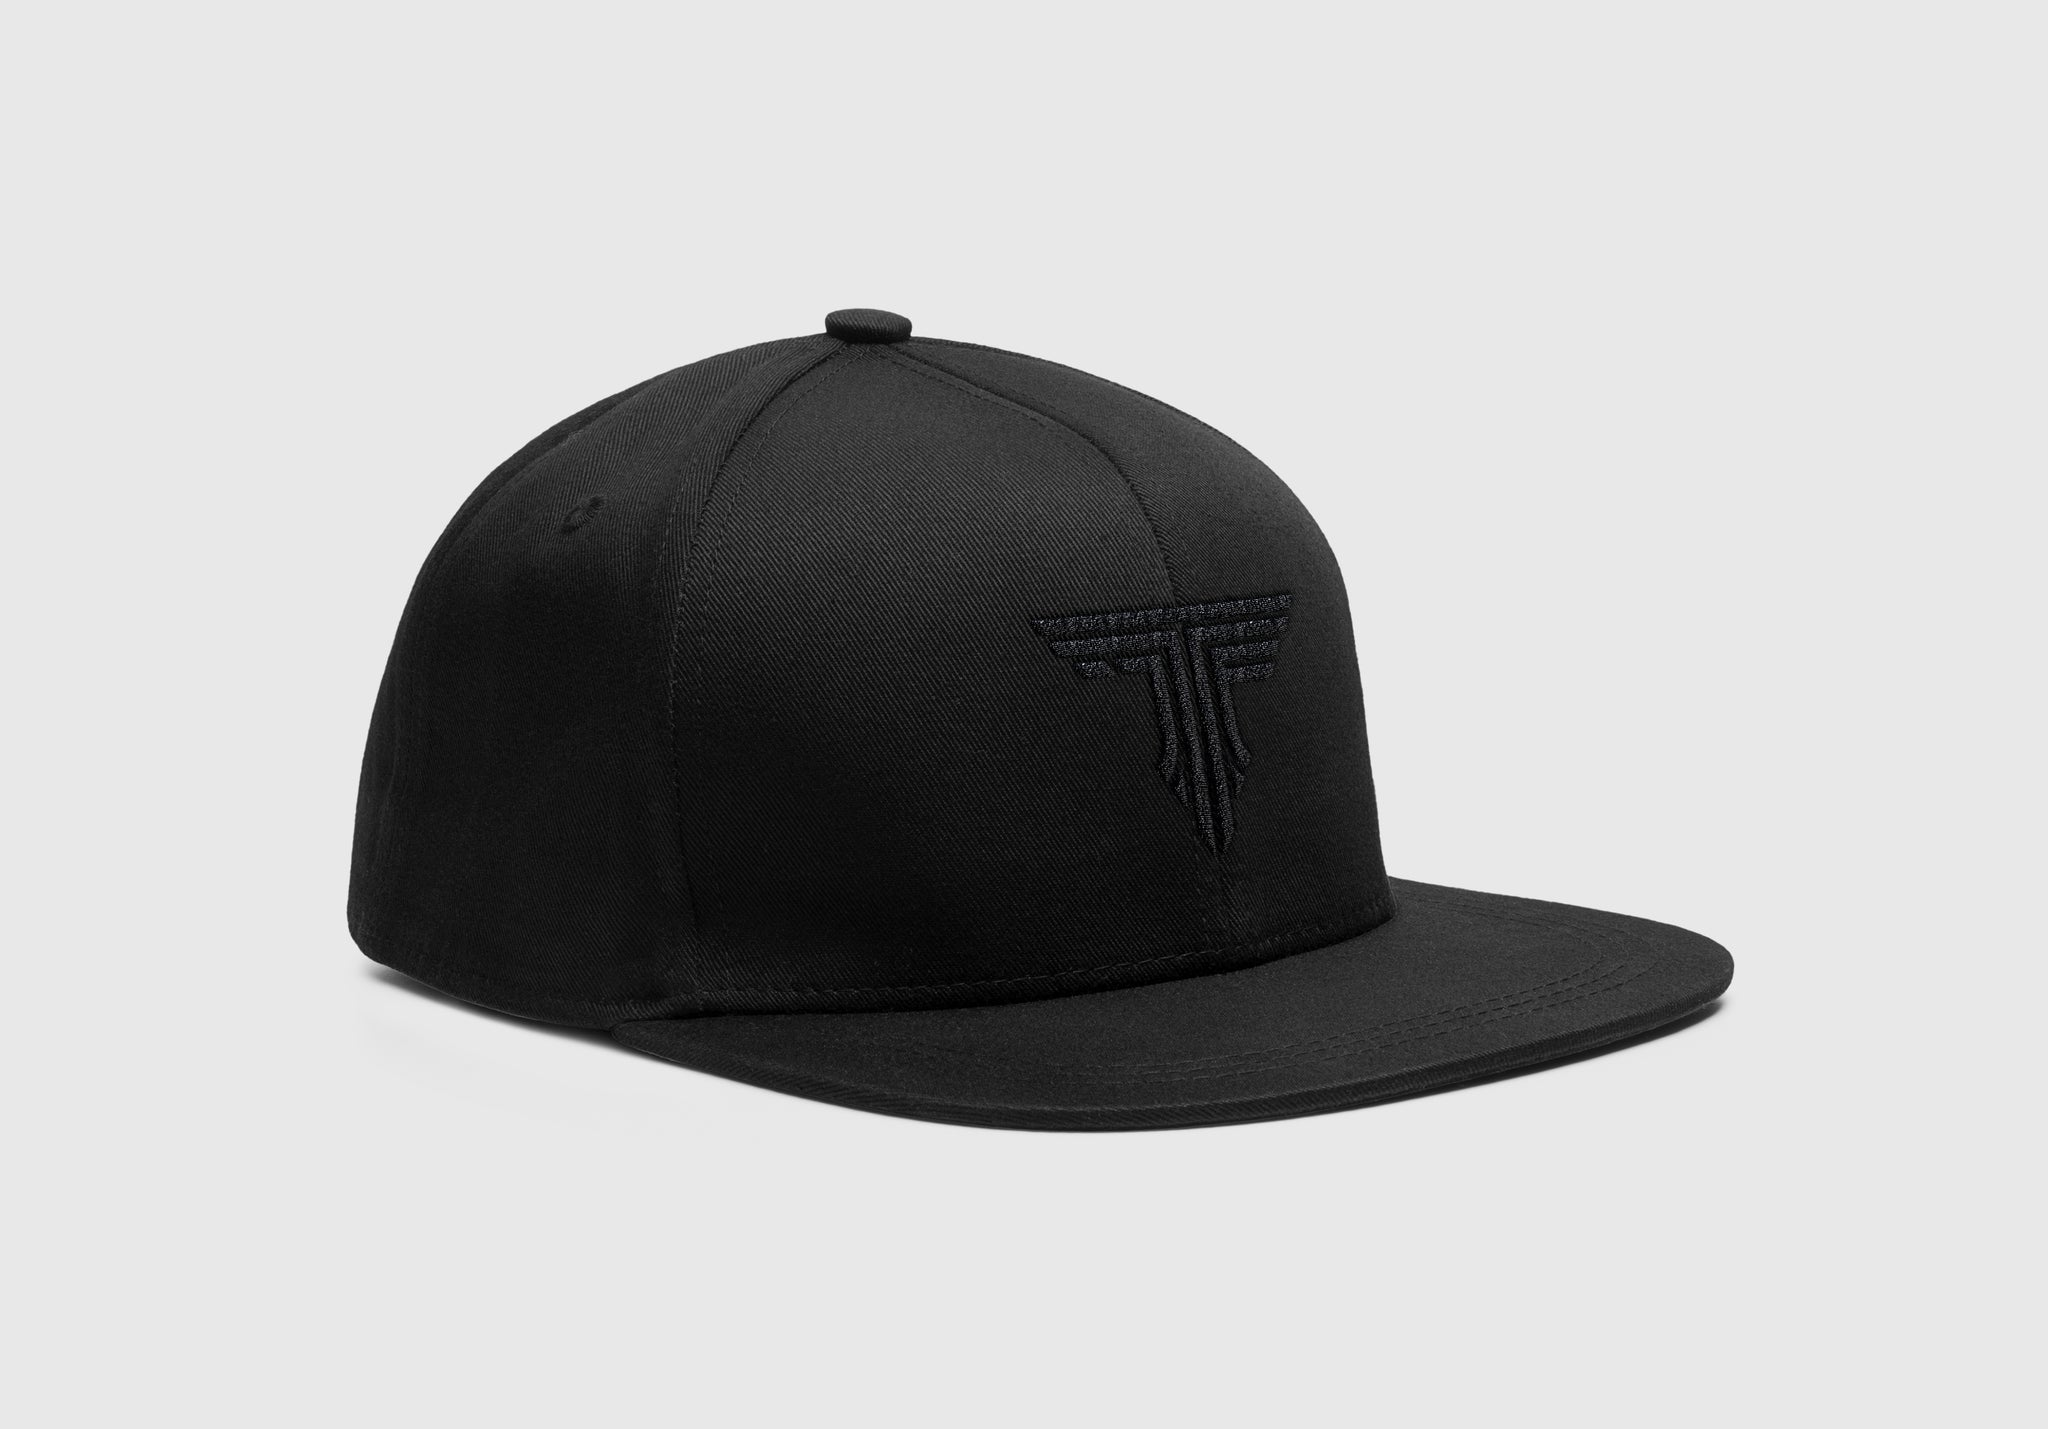 9FIFTY New Era Hat in Black